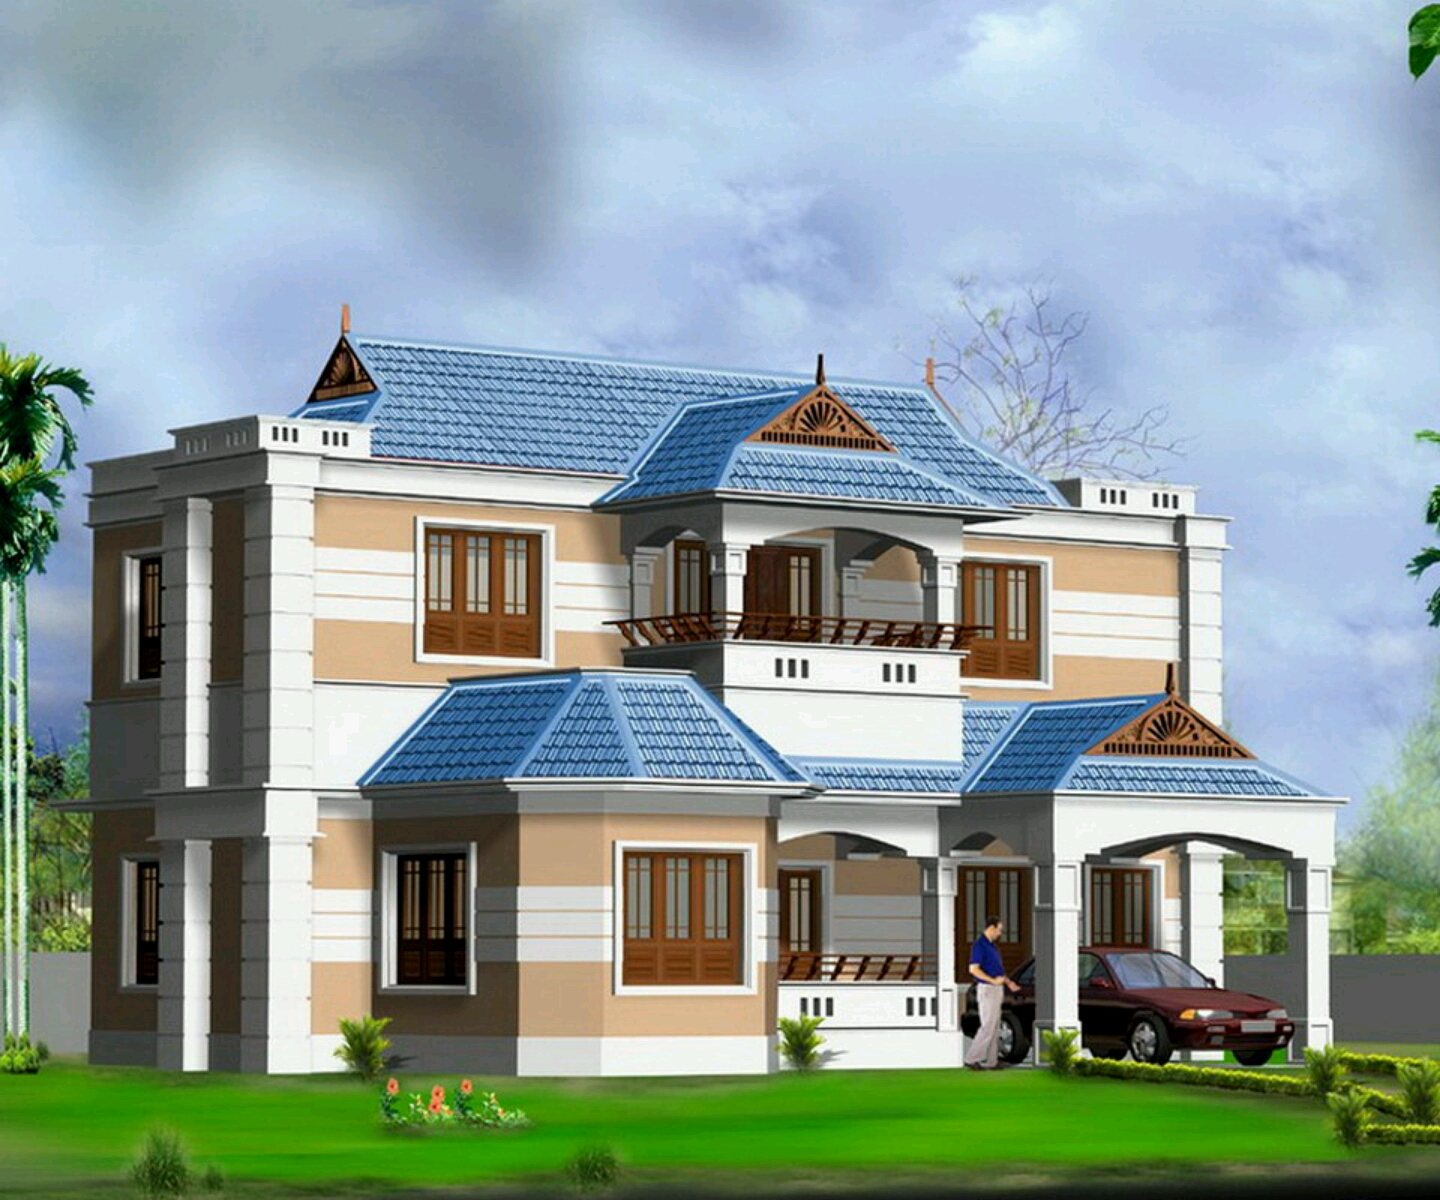 New home designs latest. Modern homes designs pictures.